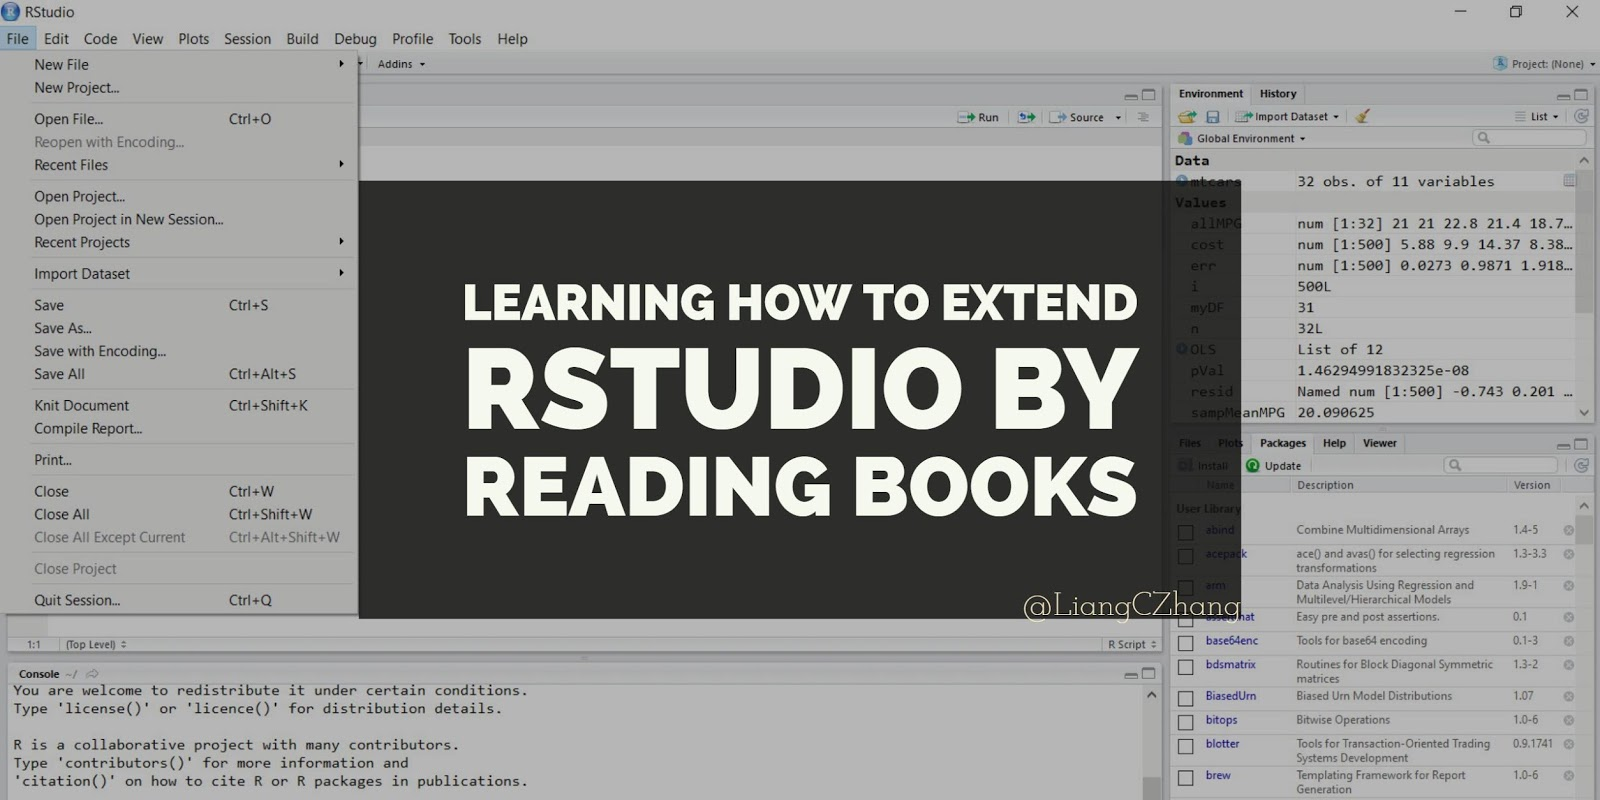 Learning how to extend #RStudio by reading books